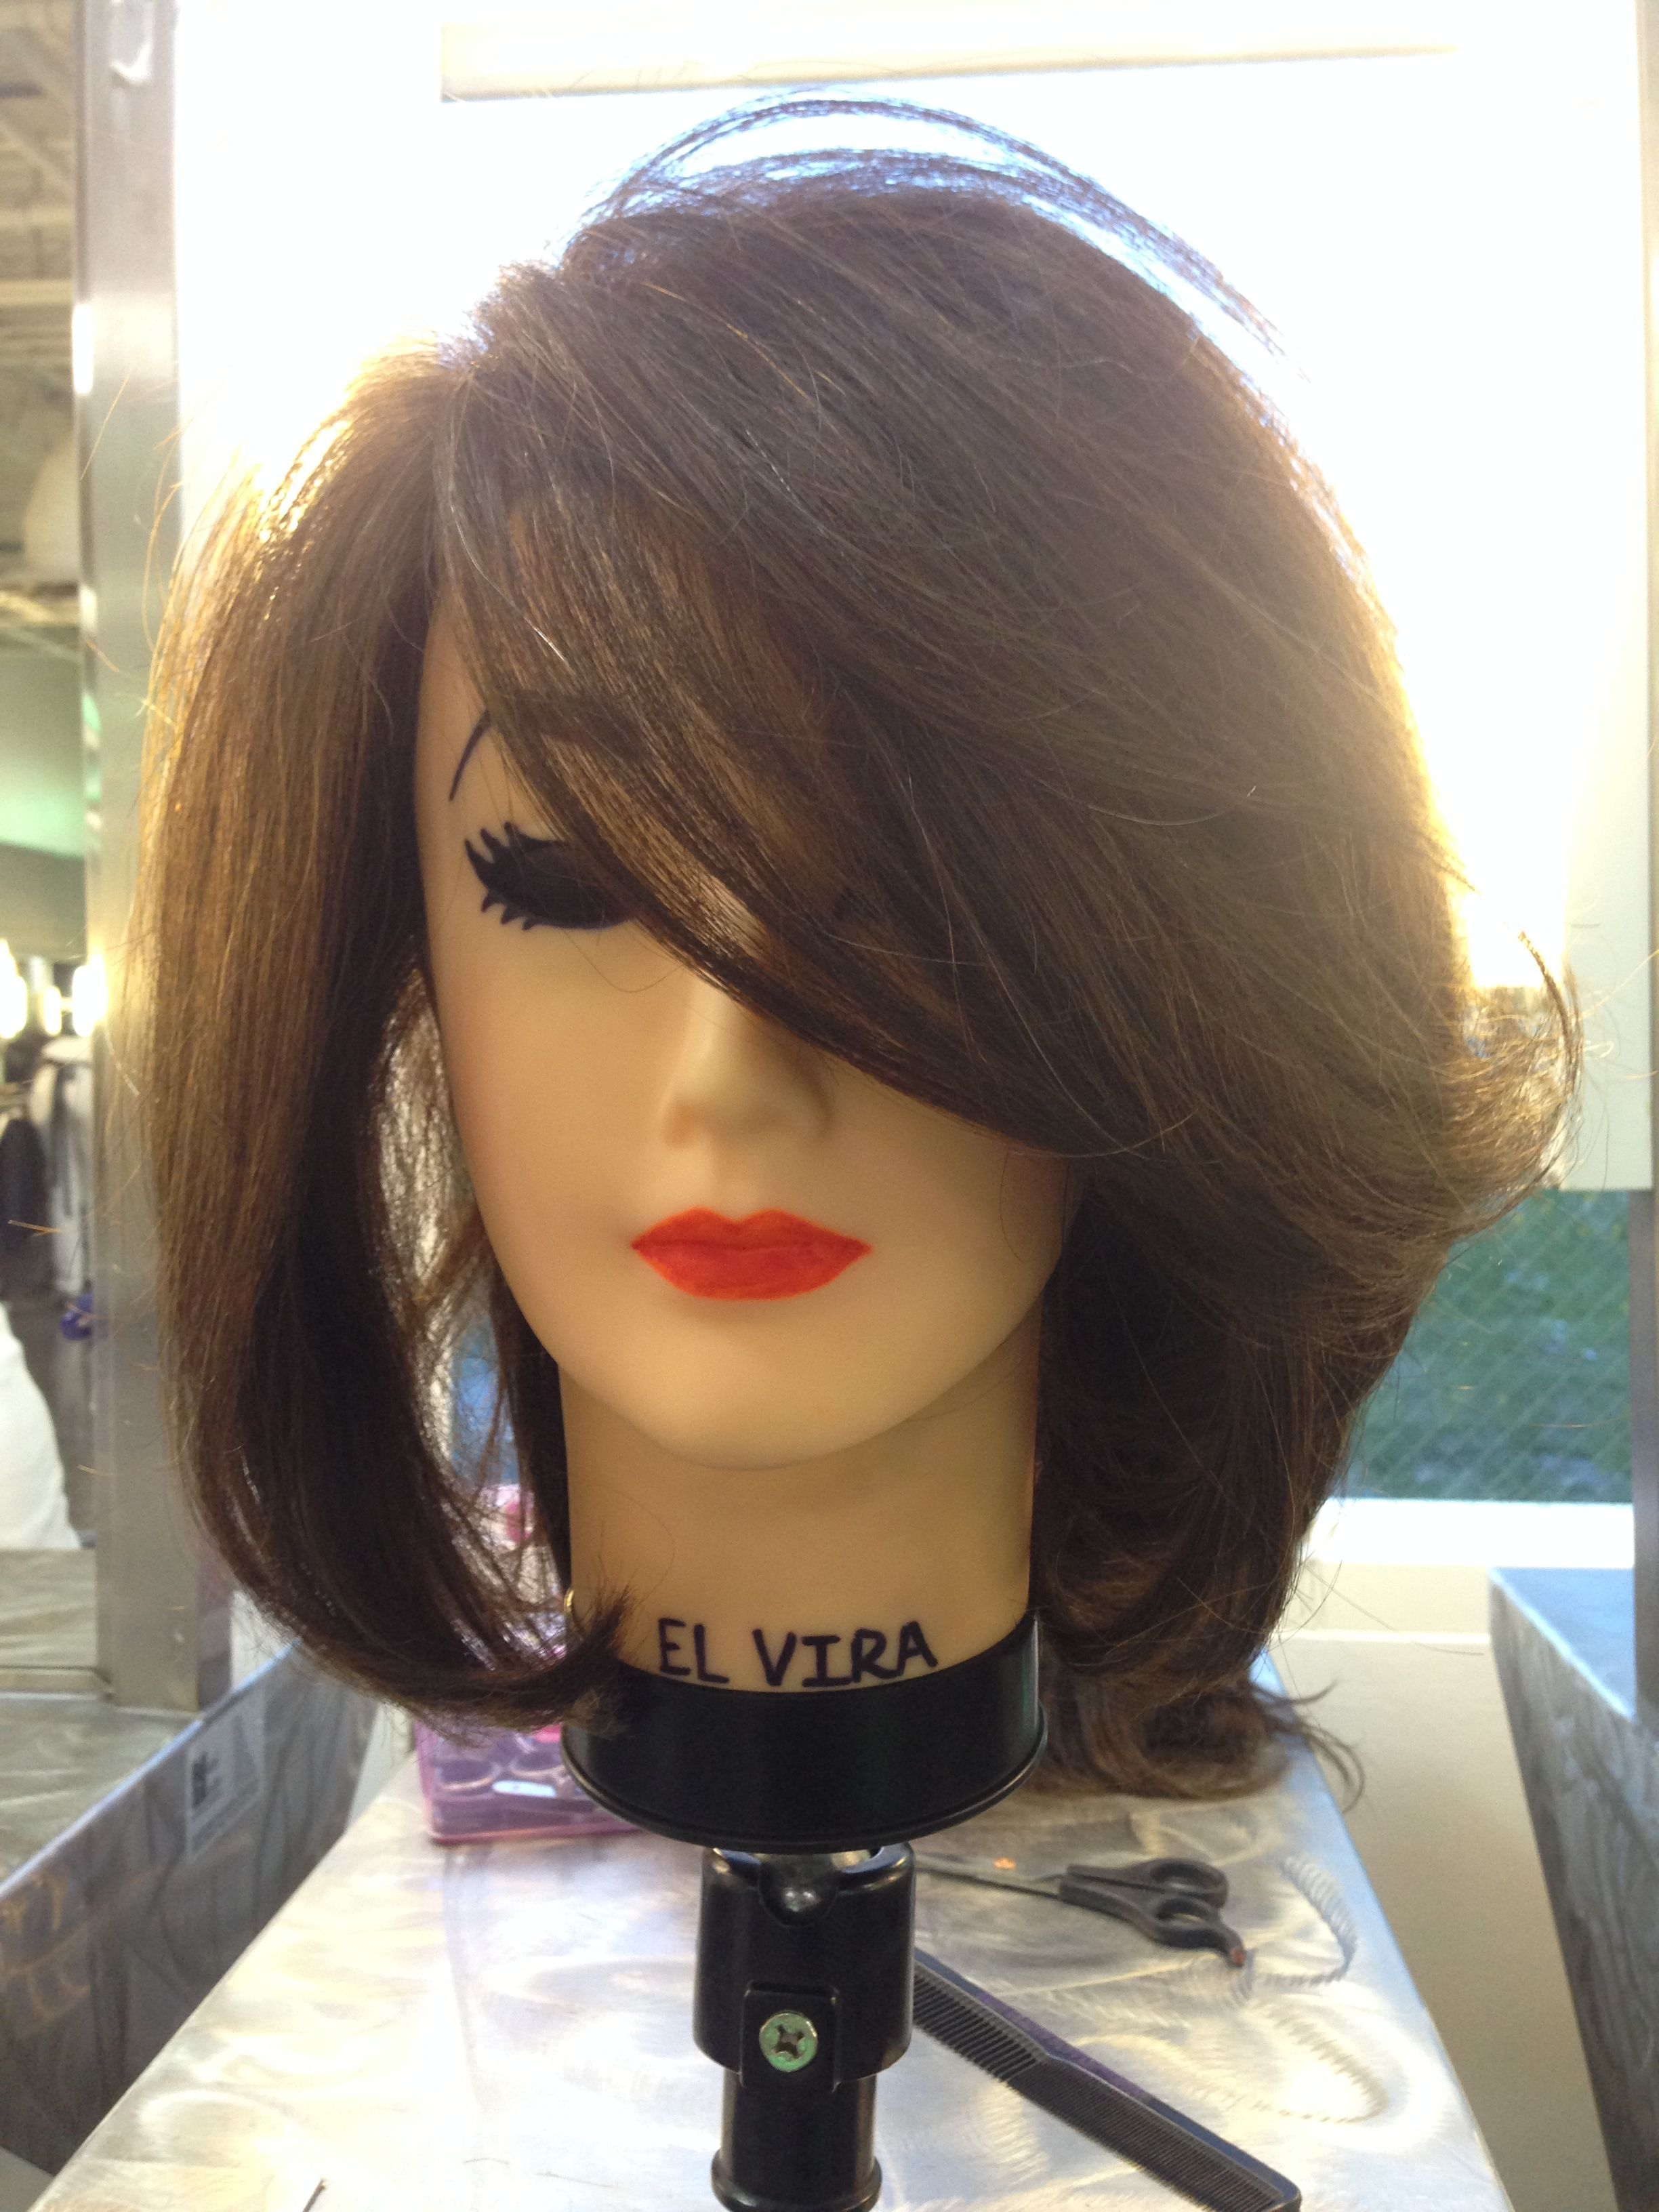 Pin By Shawnai Foster On Hair In 2020 Blowdry Styles Round Brush Blowdry Blow Dry